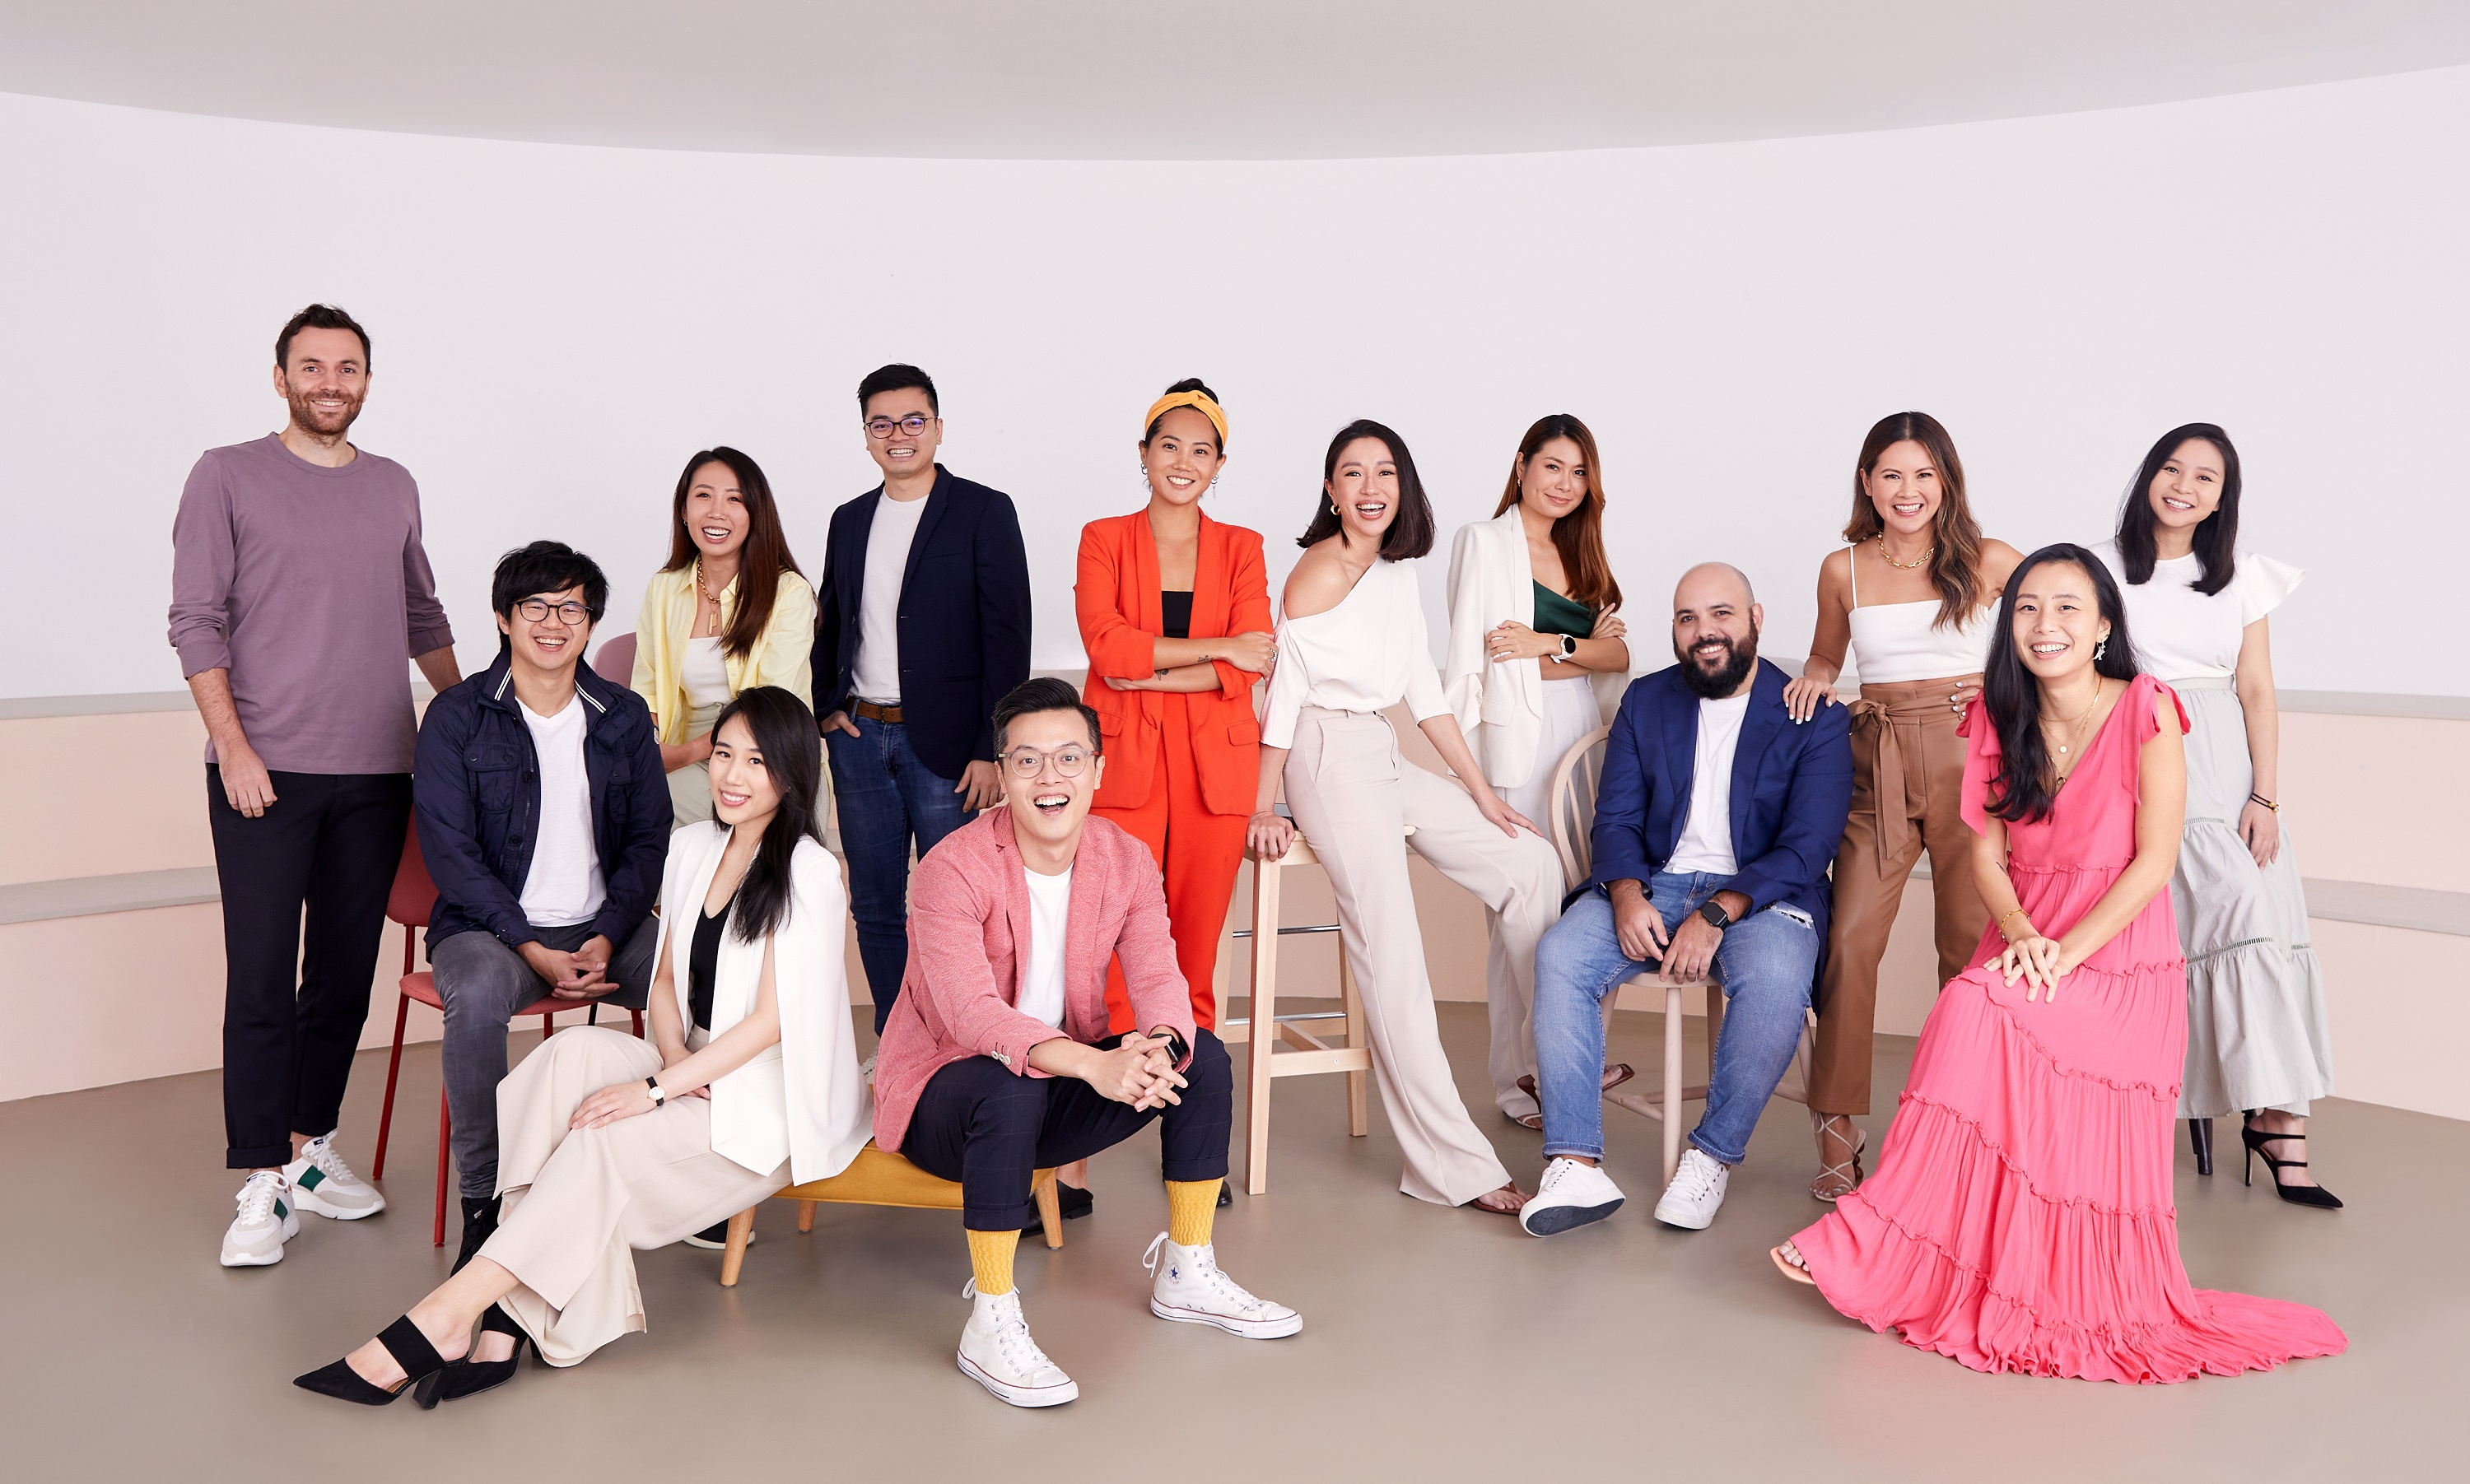 Love Bonito raises US50MILLION in Series C funding to fuel category and international expansion